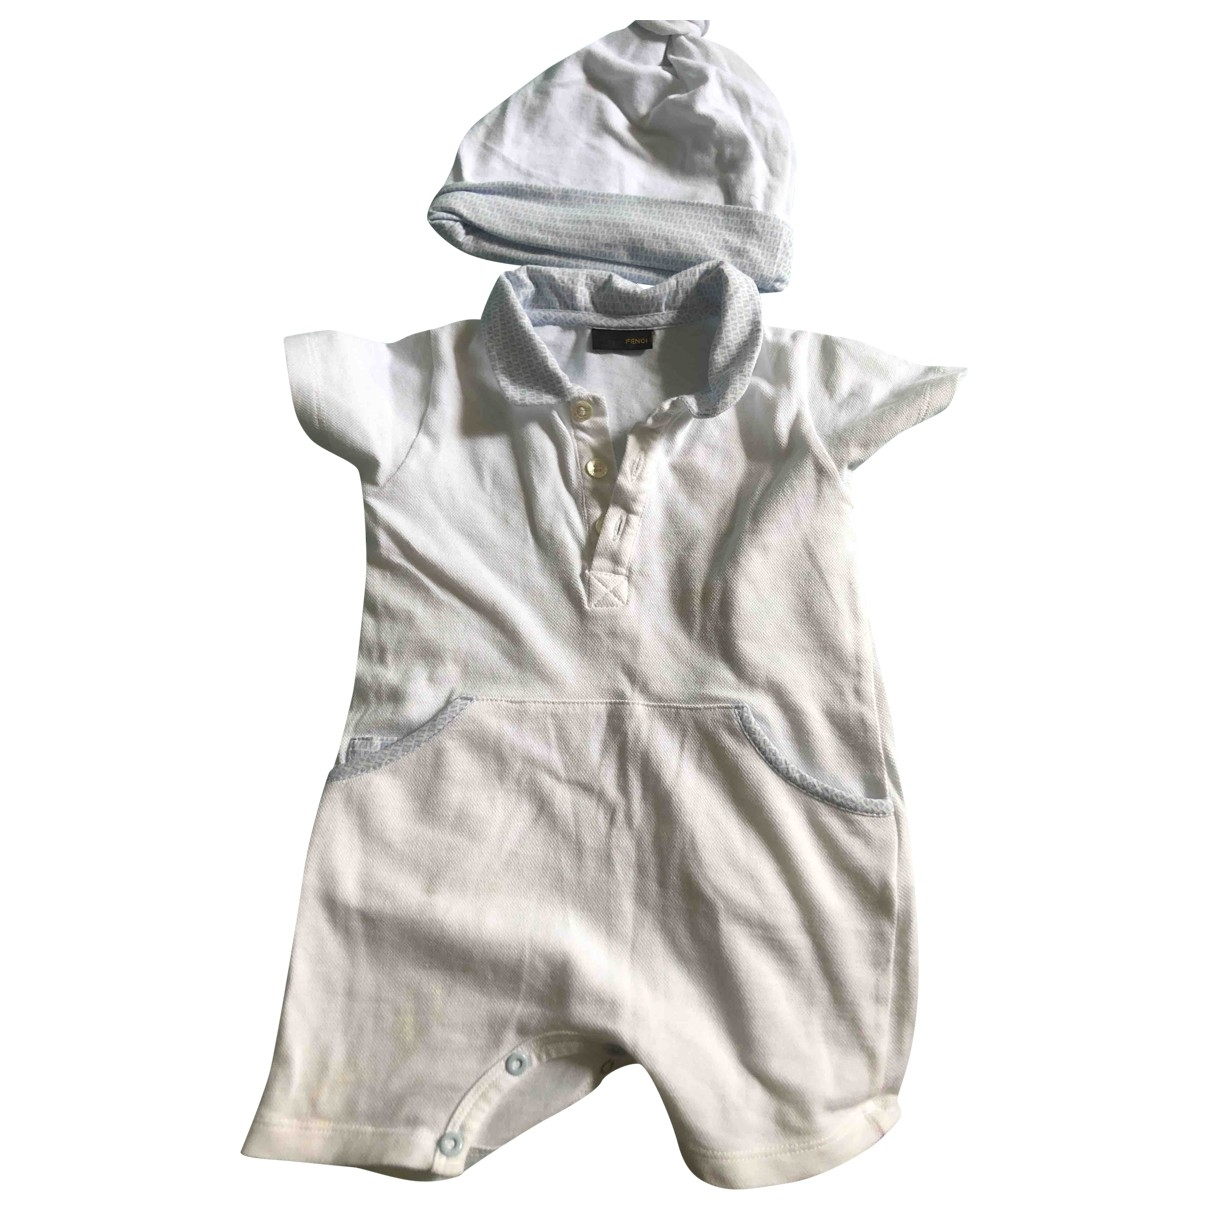 Fendi \N White Cotton Outfits for Kids 3 months - up to 60cm FR